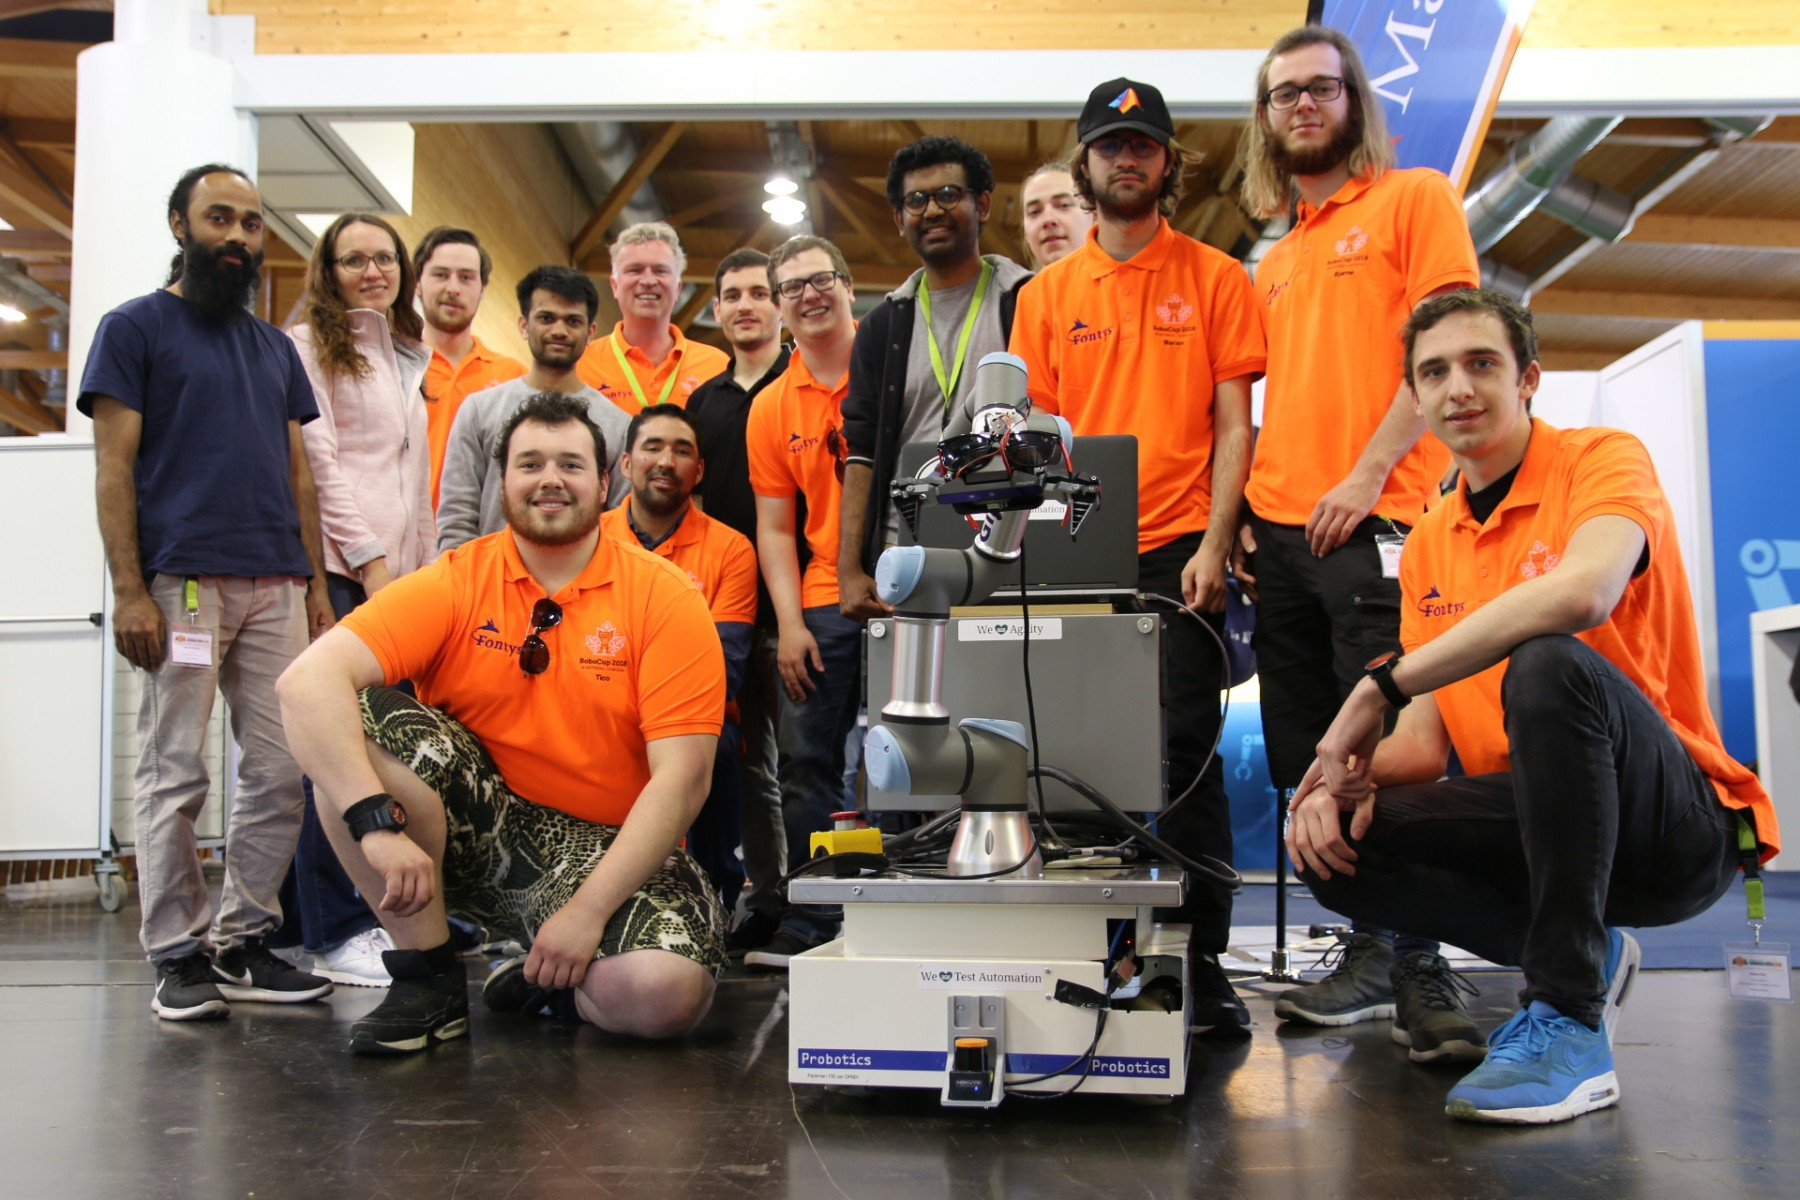 Het team Fontys@Work (in de oranje shirtjes) met robot Faraday. Ronald Scheer is de achterste persoon in het oranje shirt.